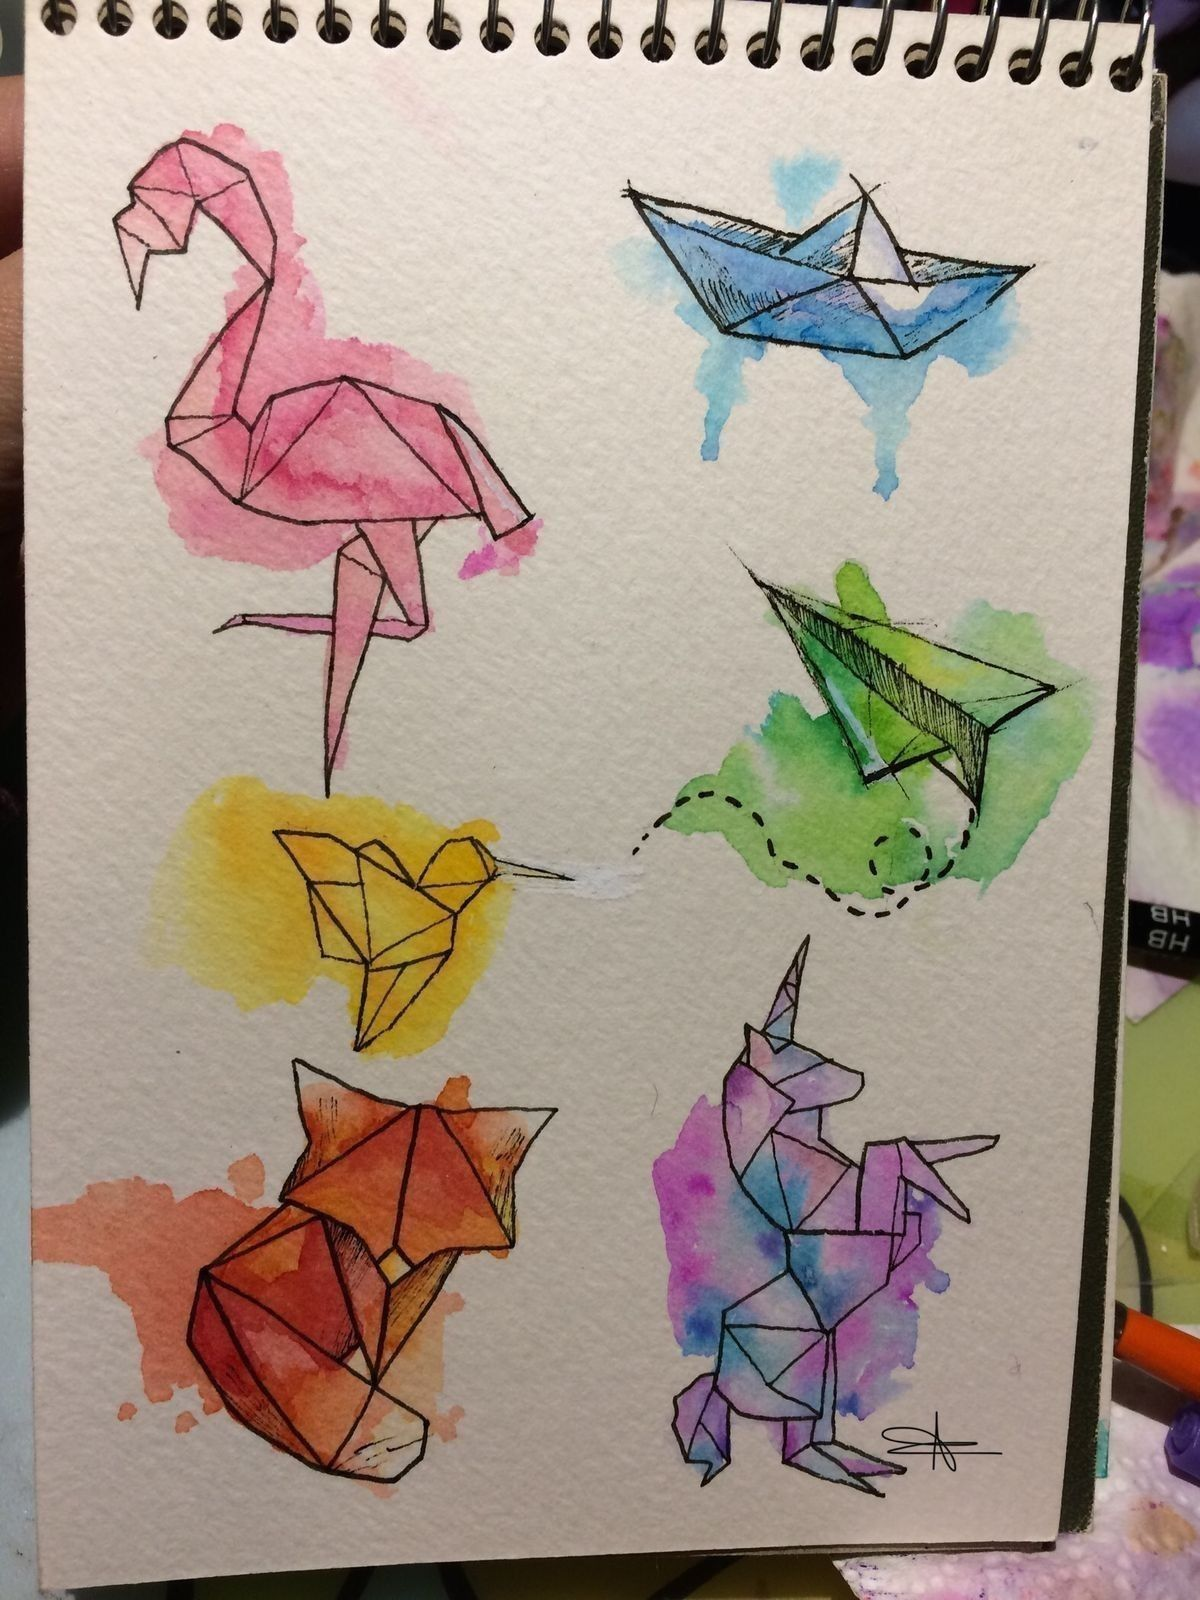 Photo of Origami drawings